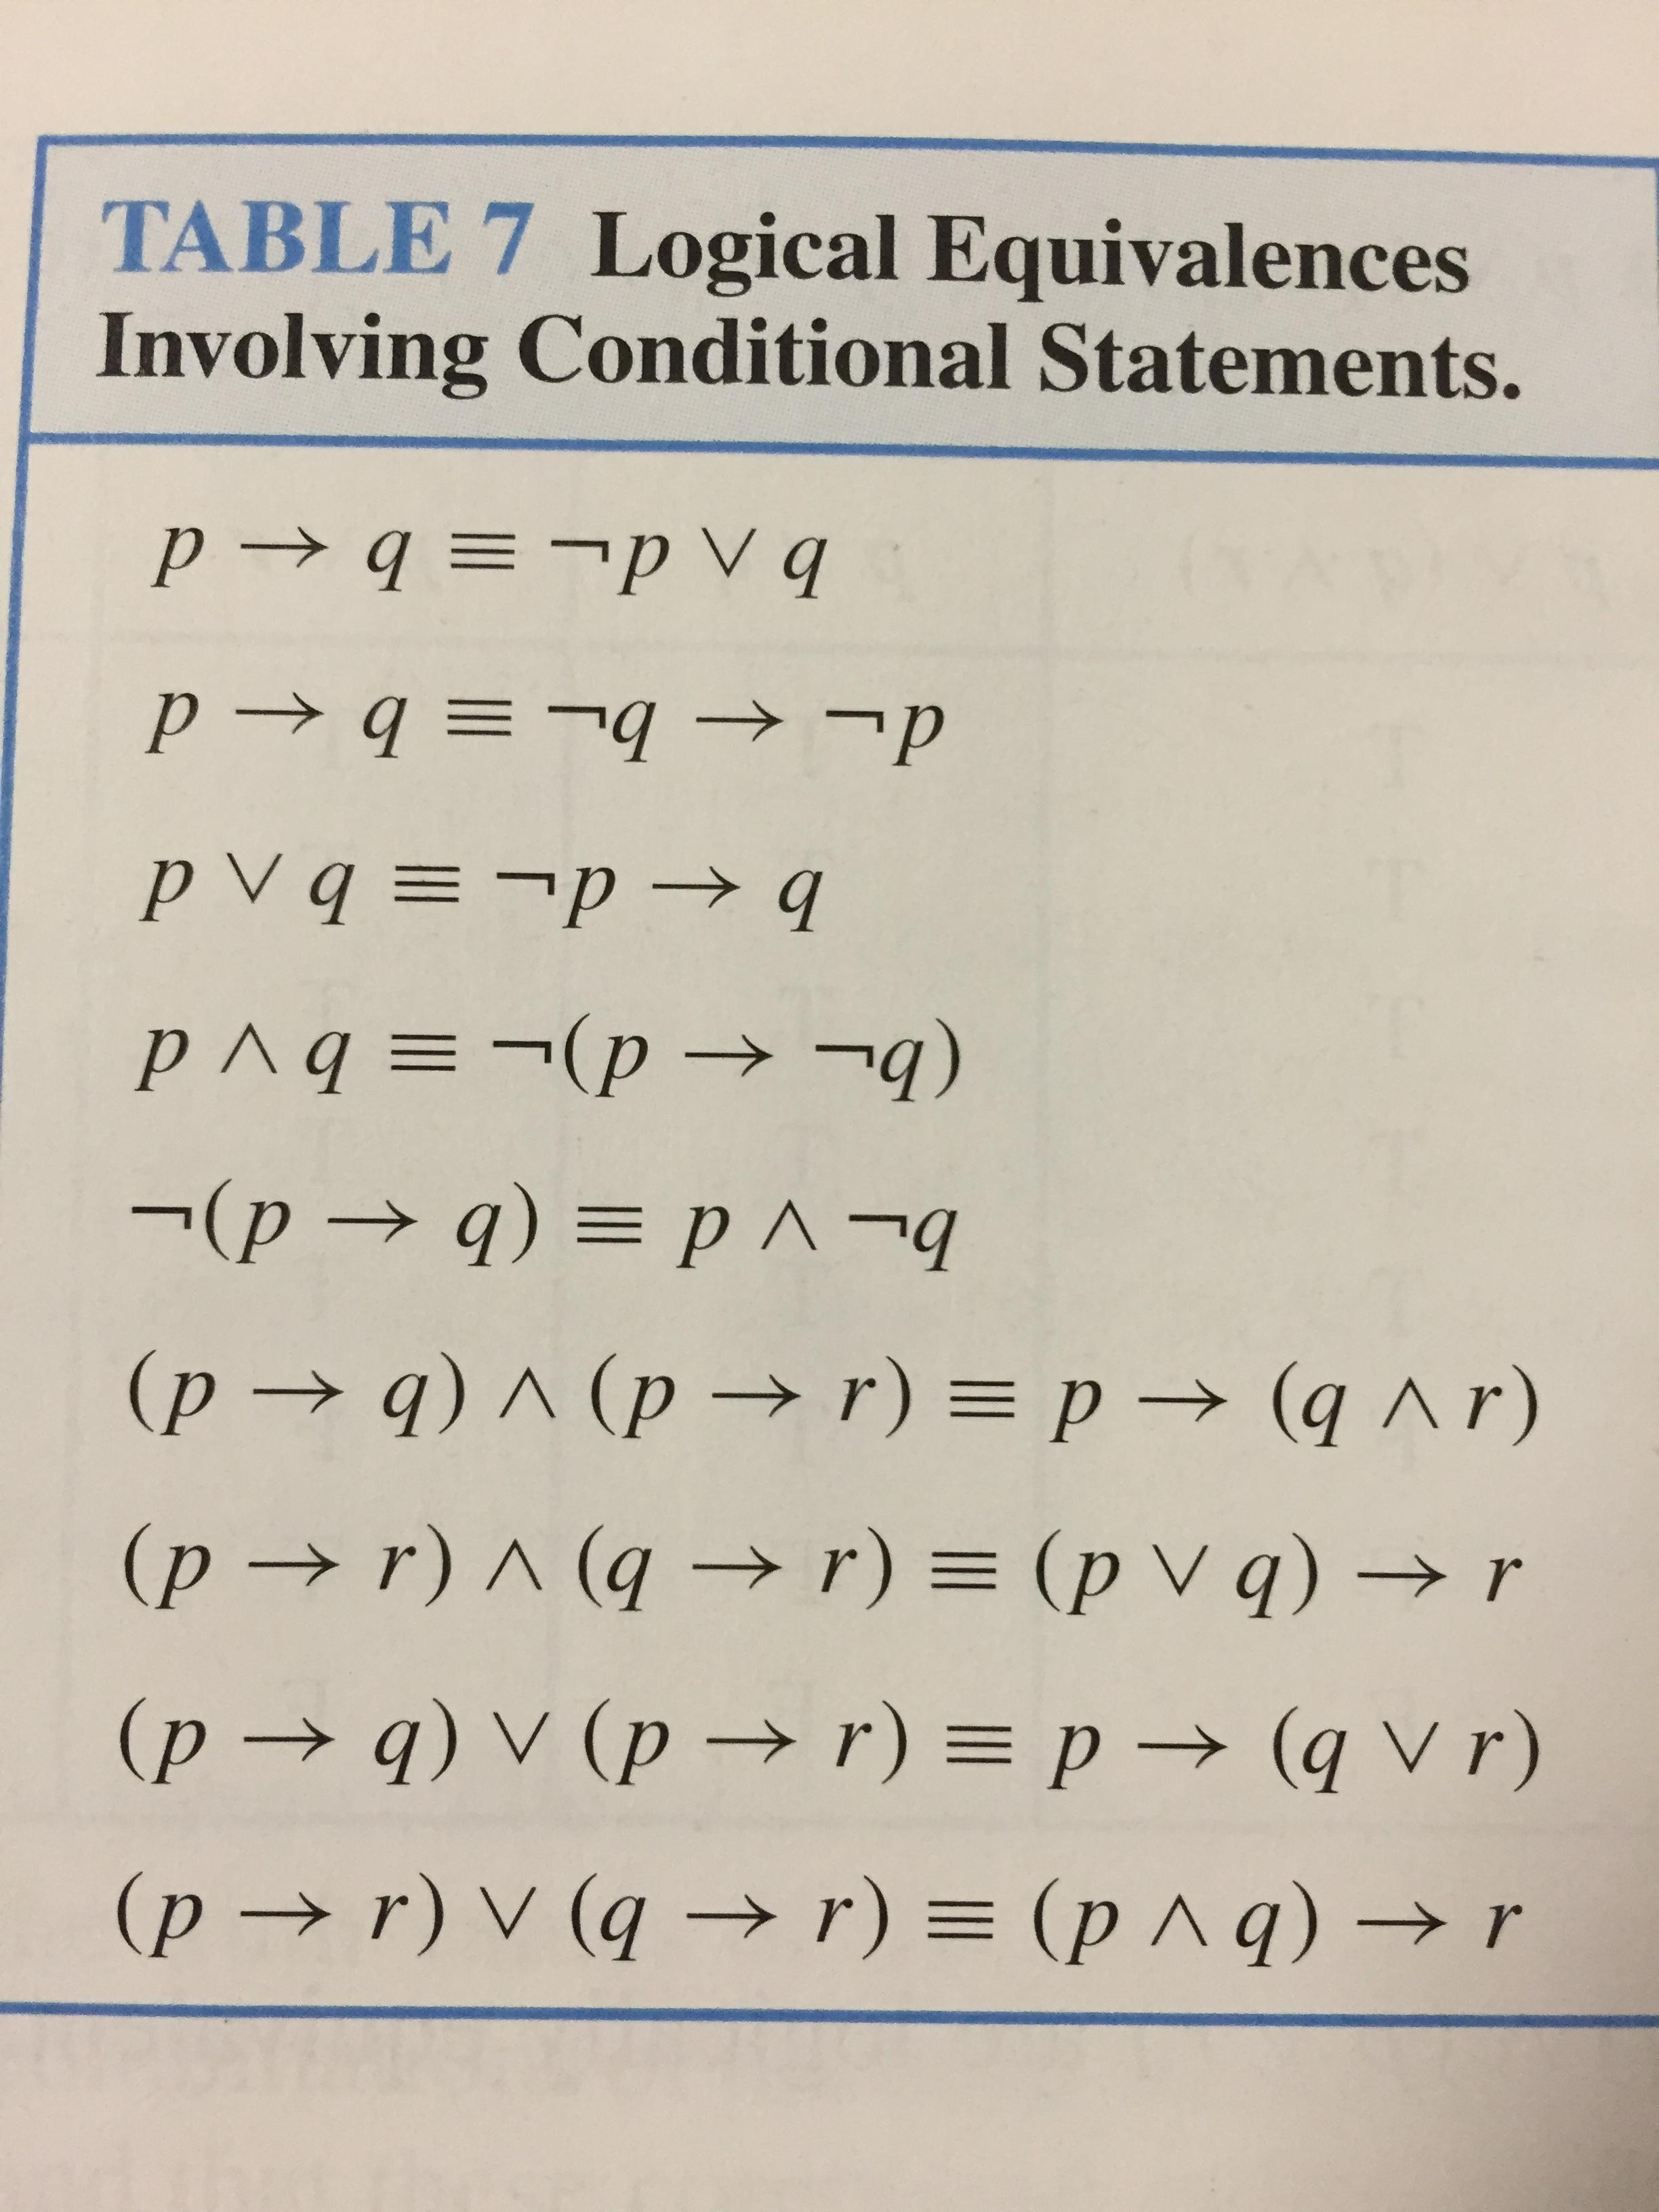 Can Someone Explain And Help Me With Propositional Logic